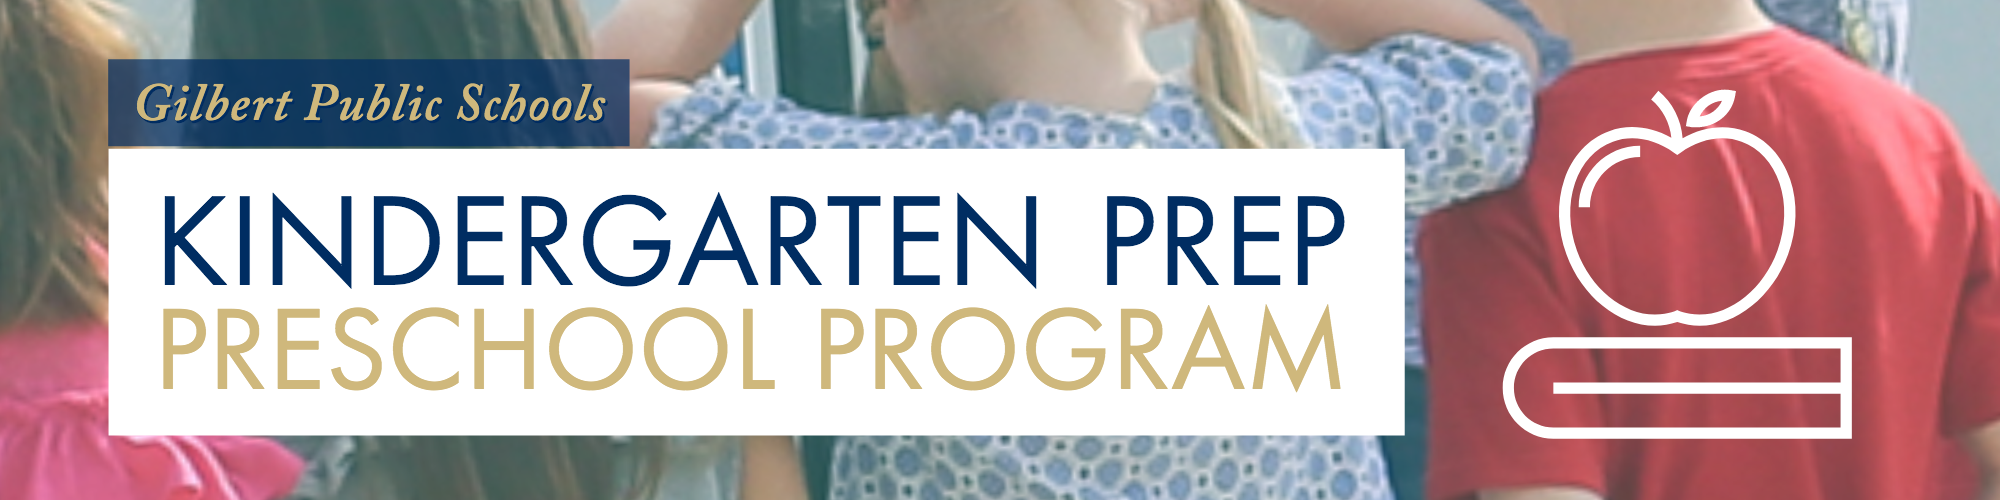 Kindergarten Prep Preschool at Gilbert Public Schools